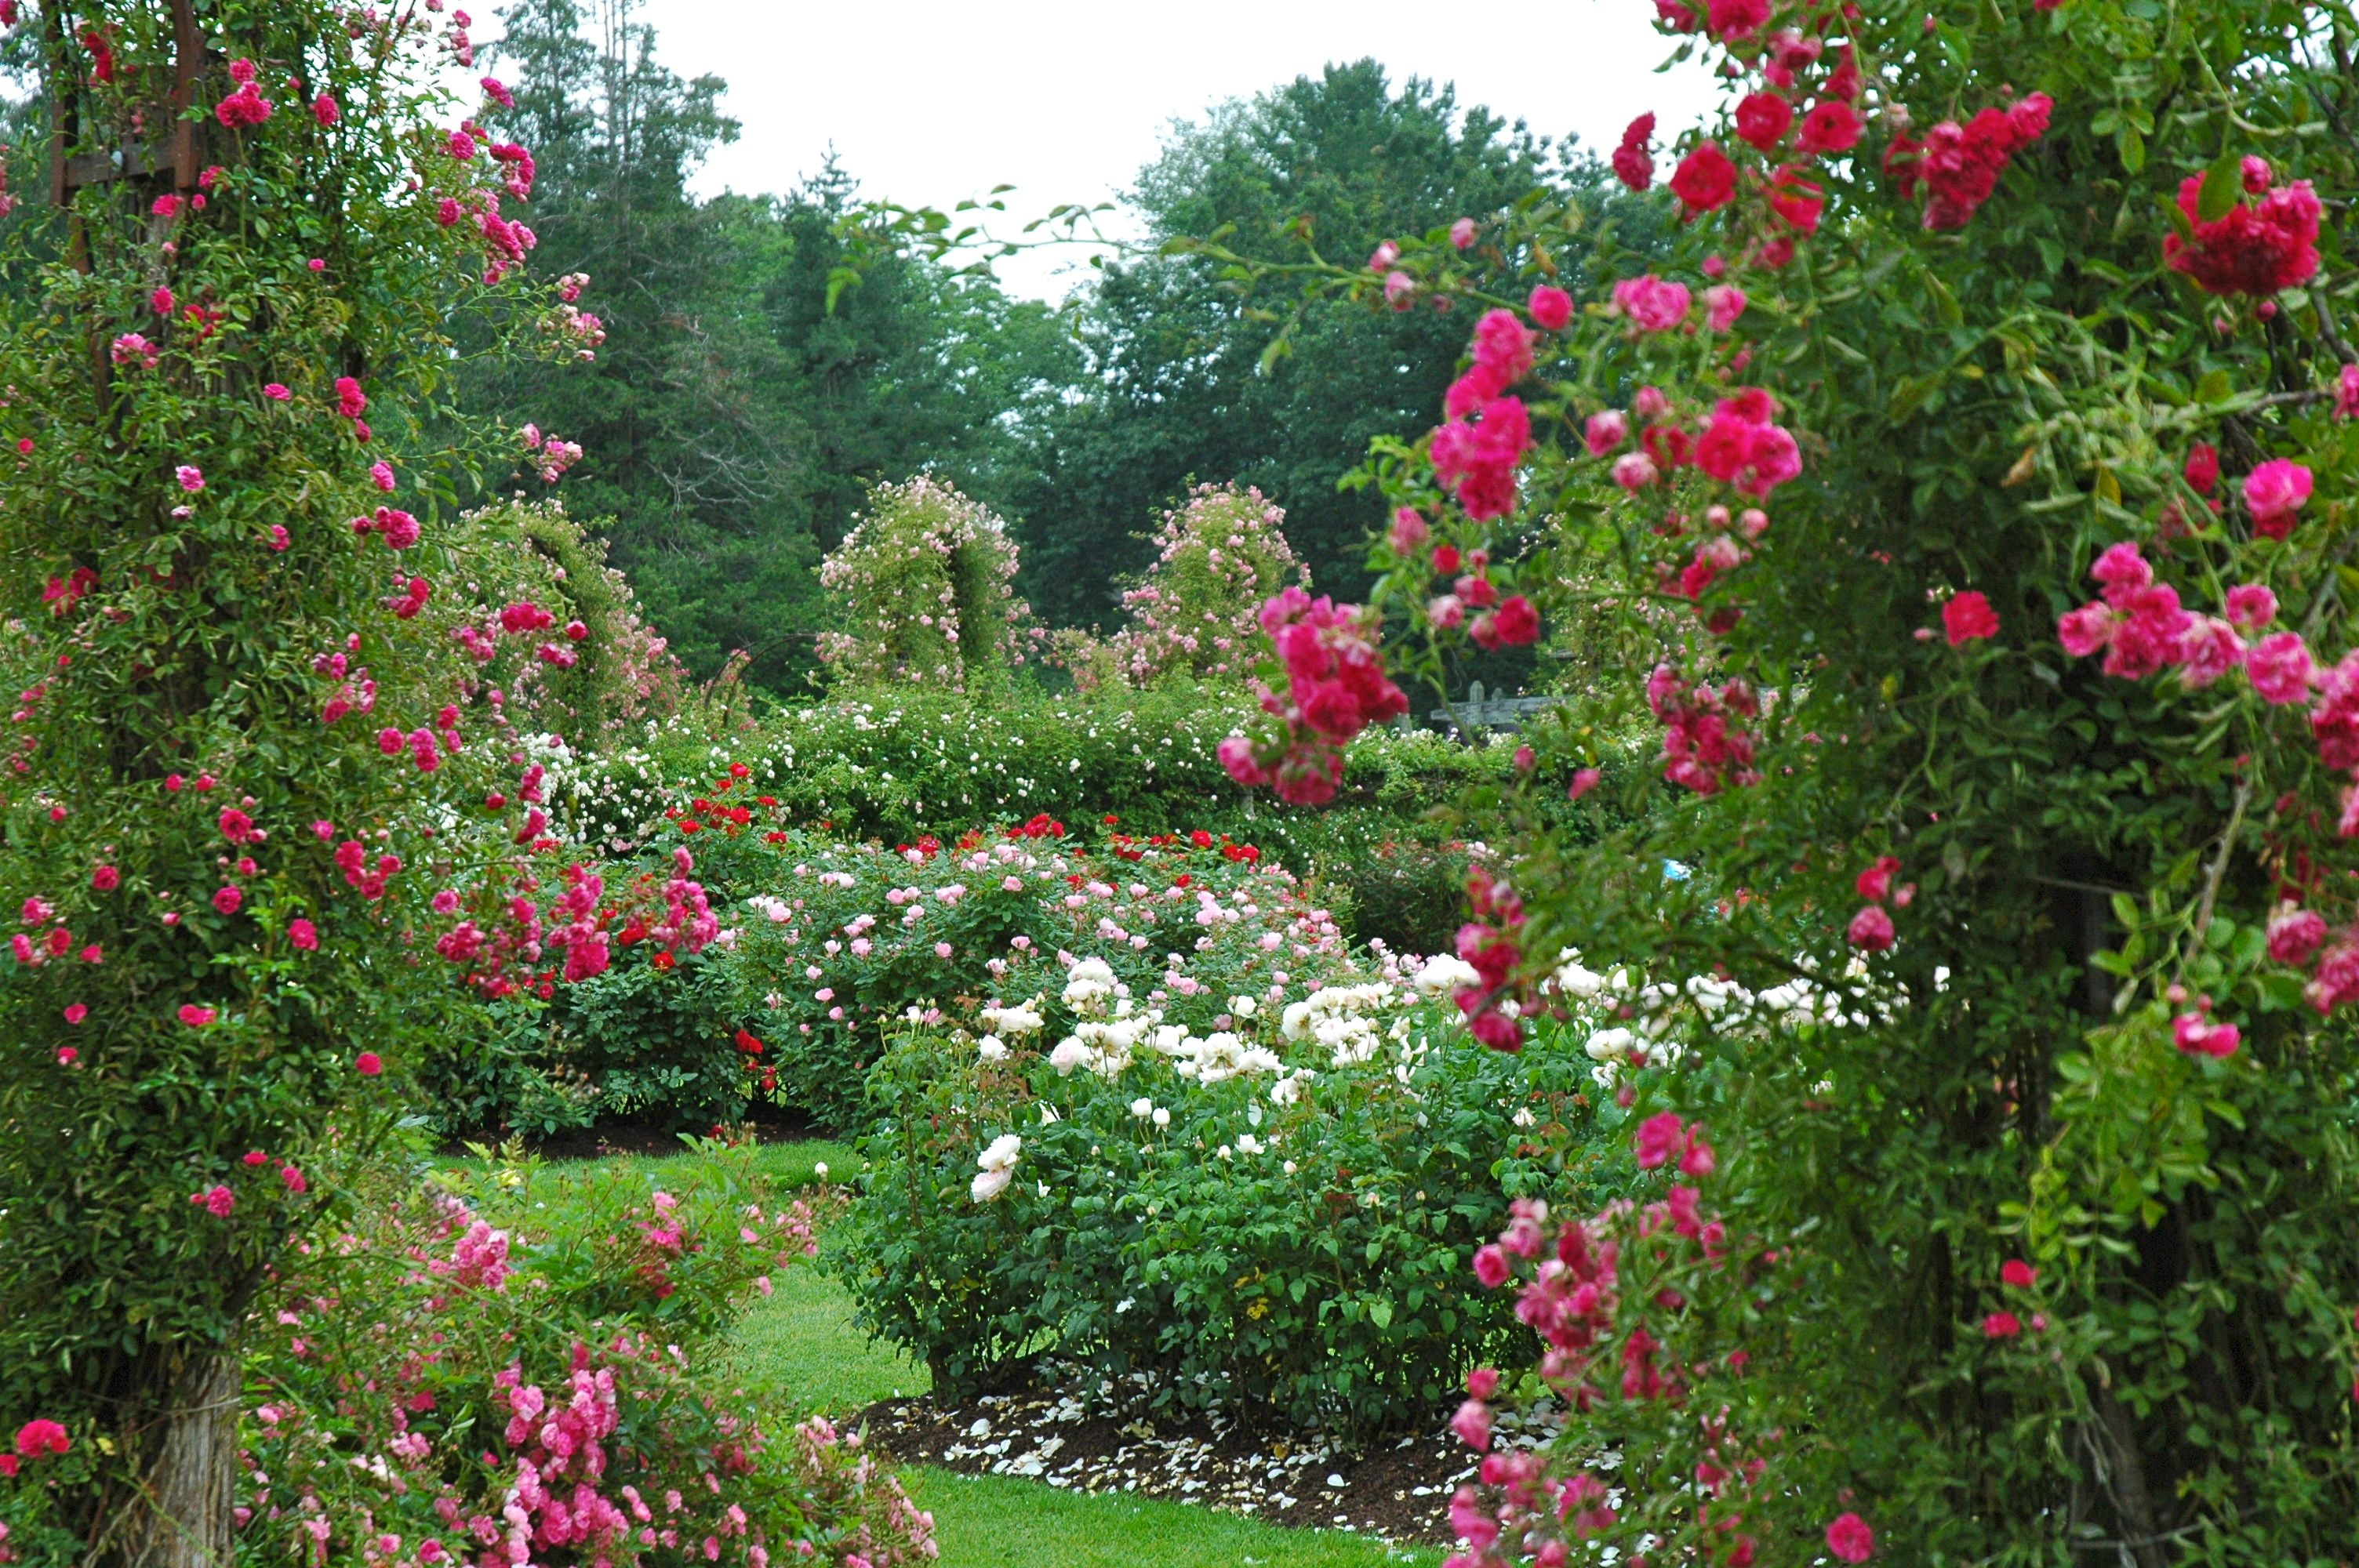 In Full Bloom Right Now The Two And Half Acre Garden Boast Roses Of All Colors And Sizes Covering Arched Wal Rose Garden Design Colorful Garden Garden Design